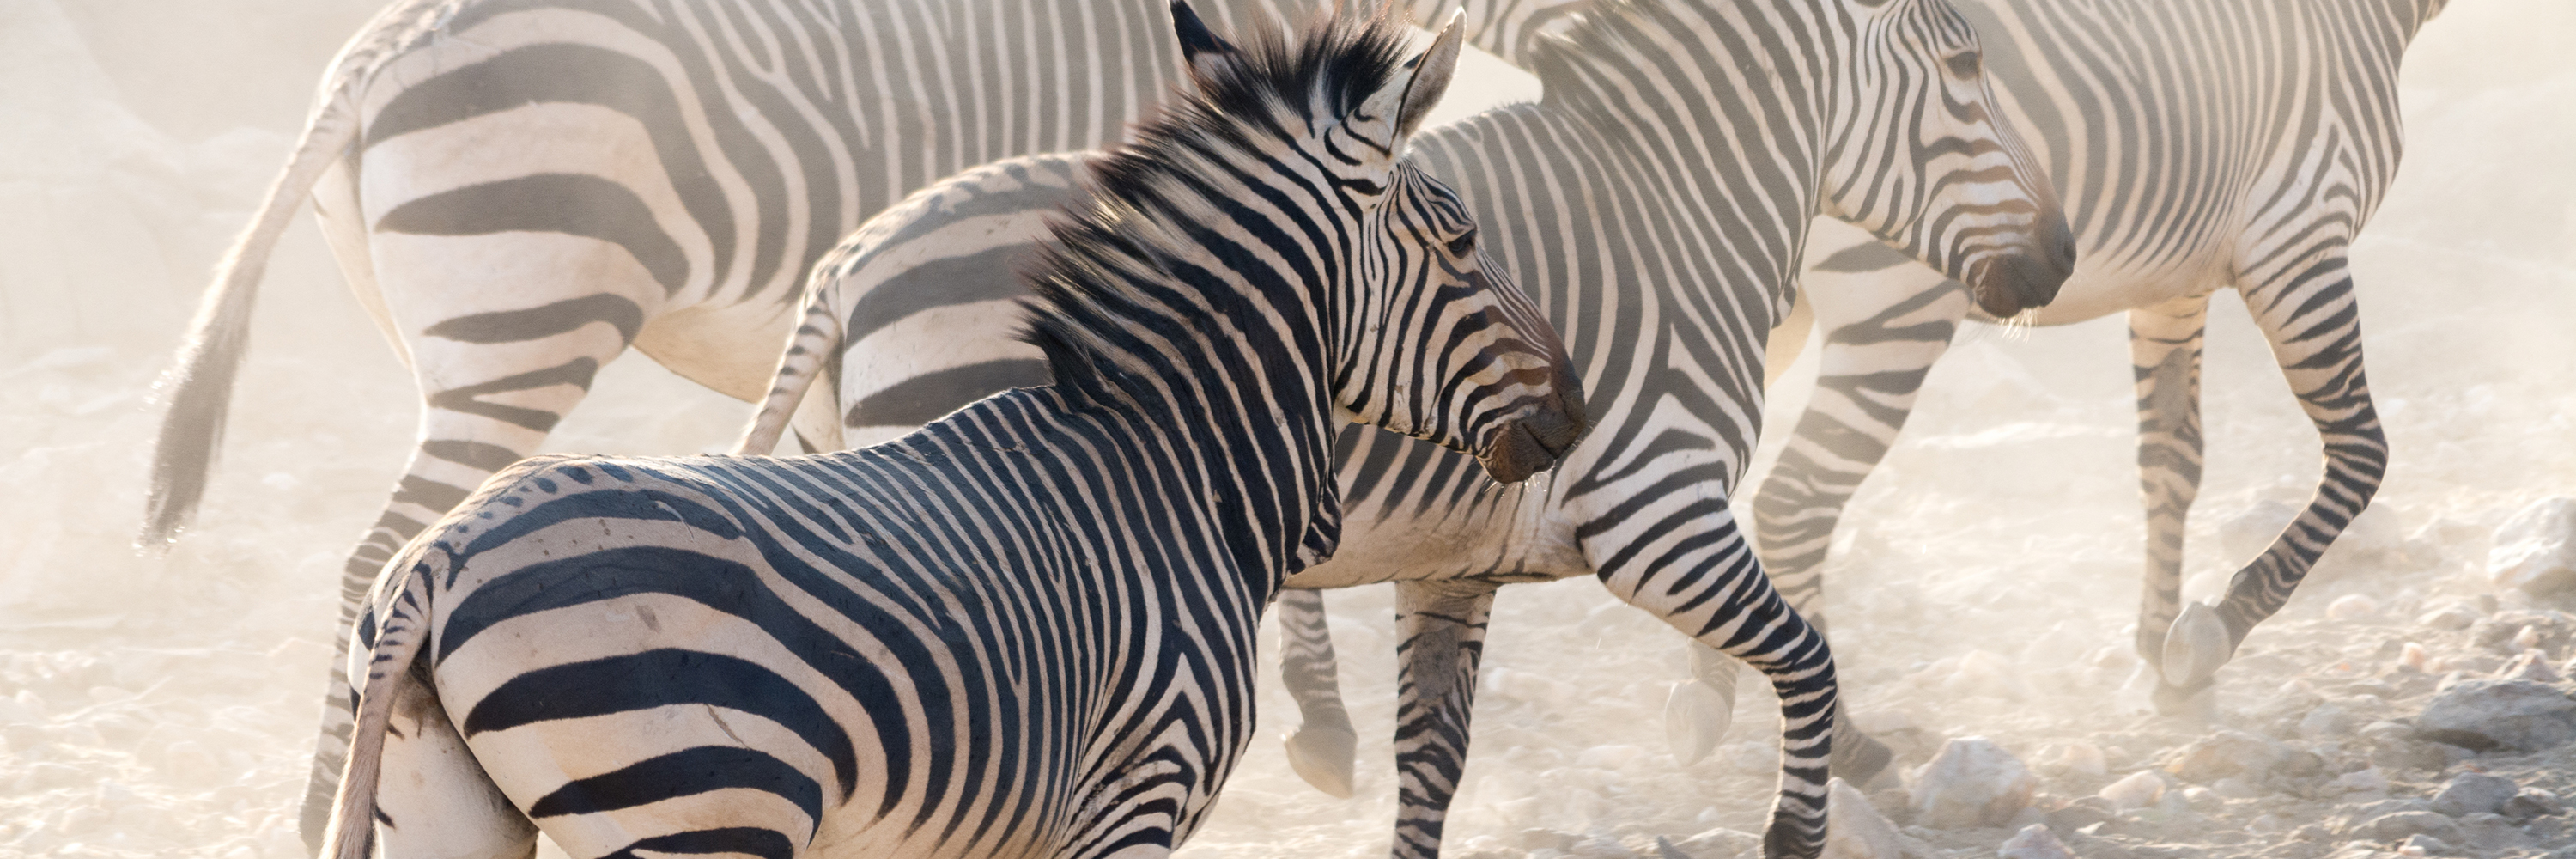 zebras - cullinan namibia about us